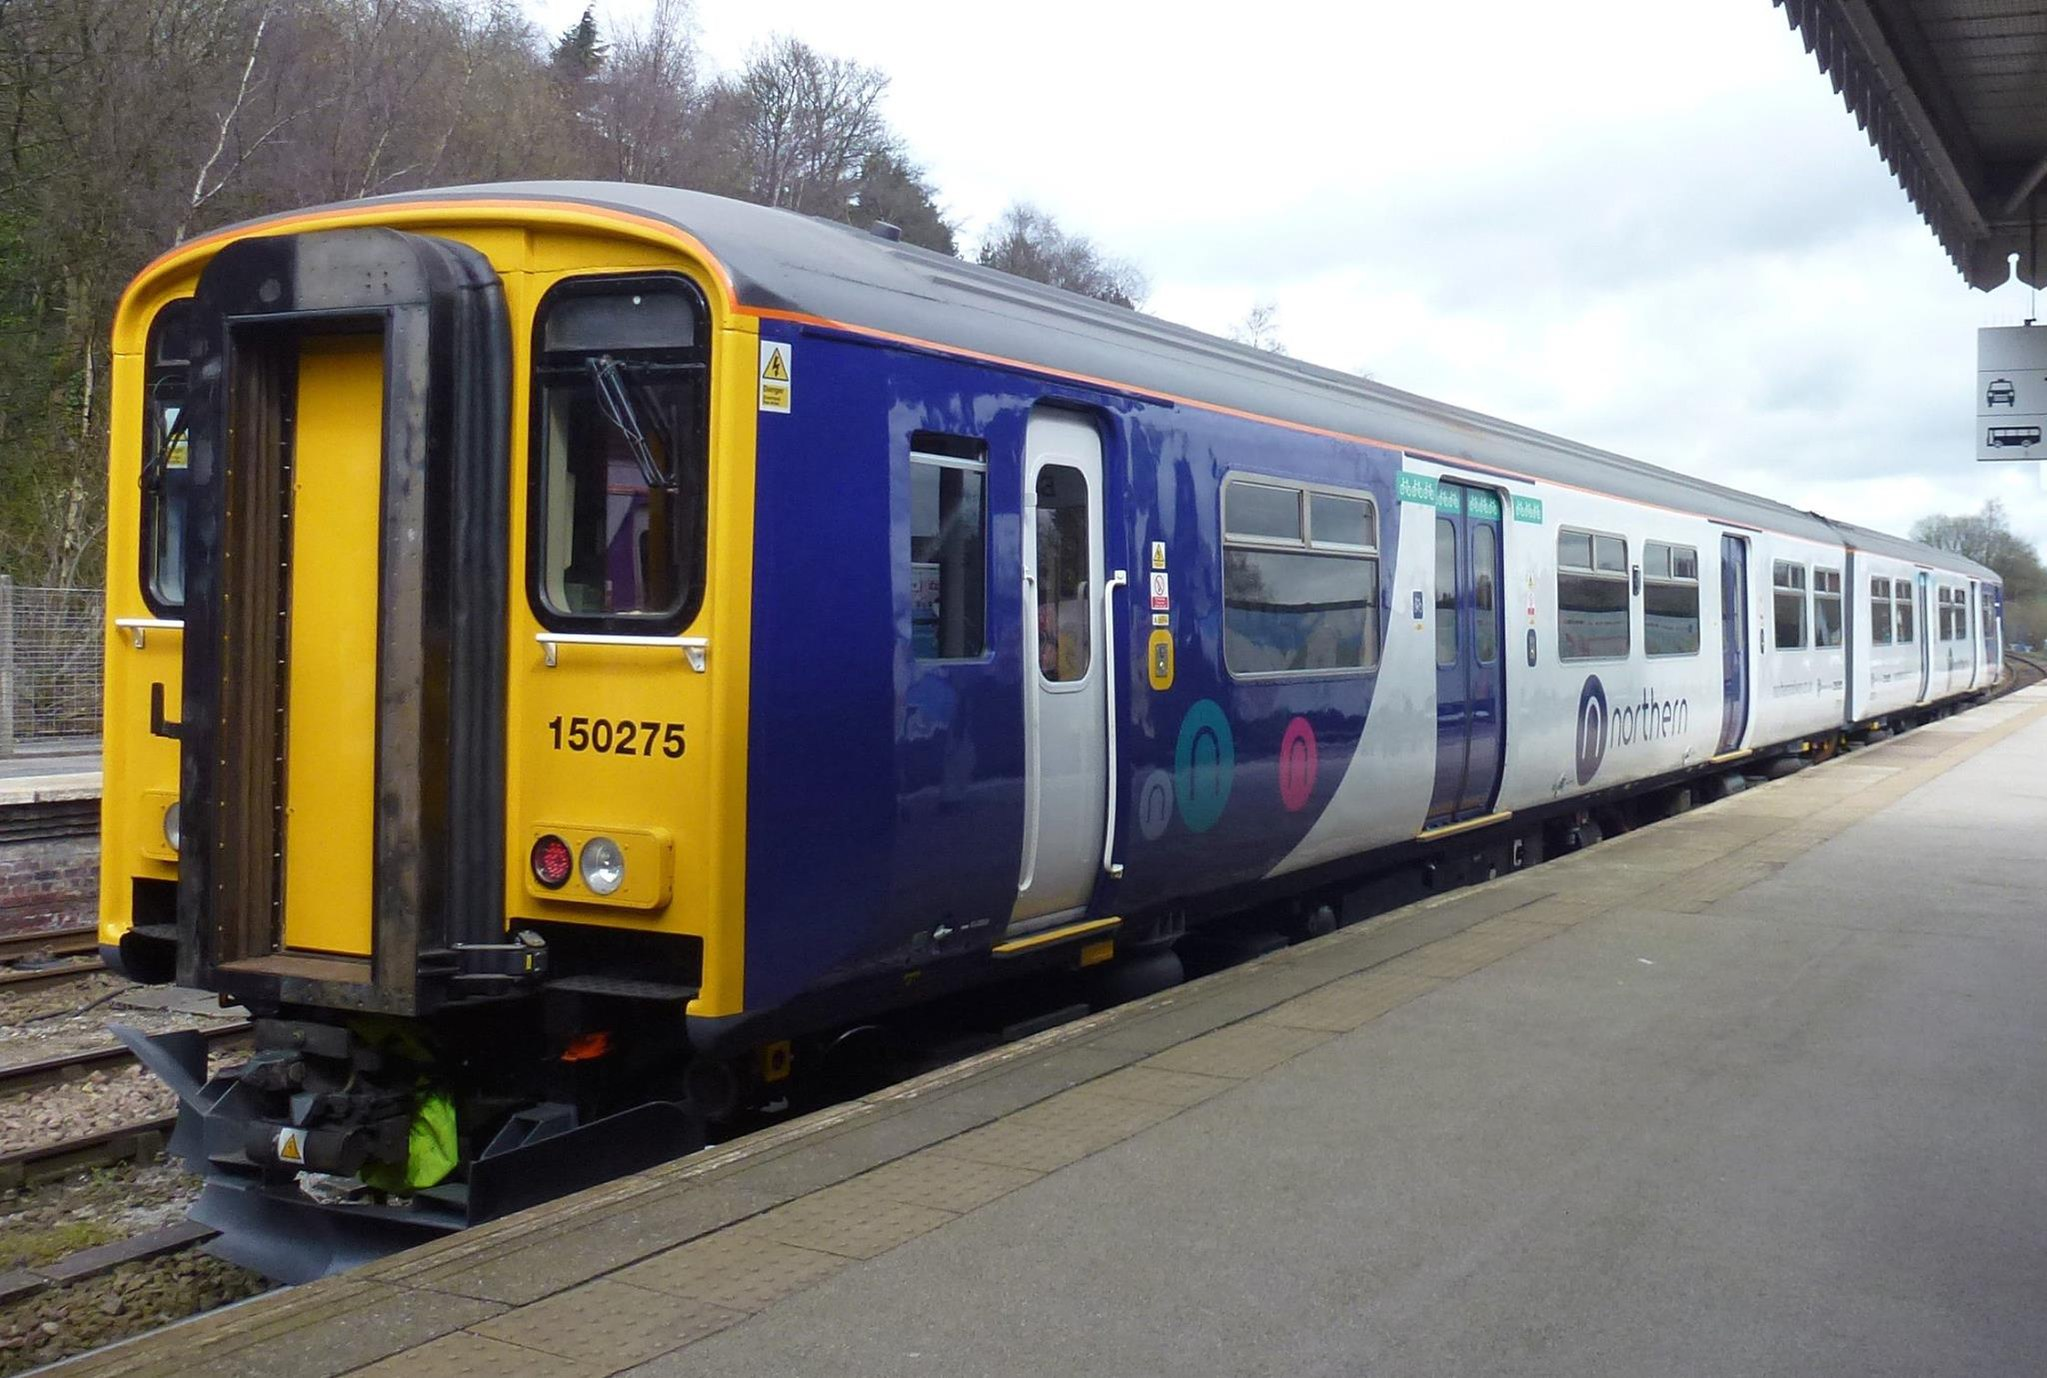 British Rail Class 150 / 2 - The complete information and